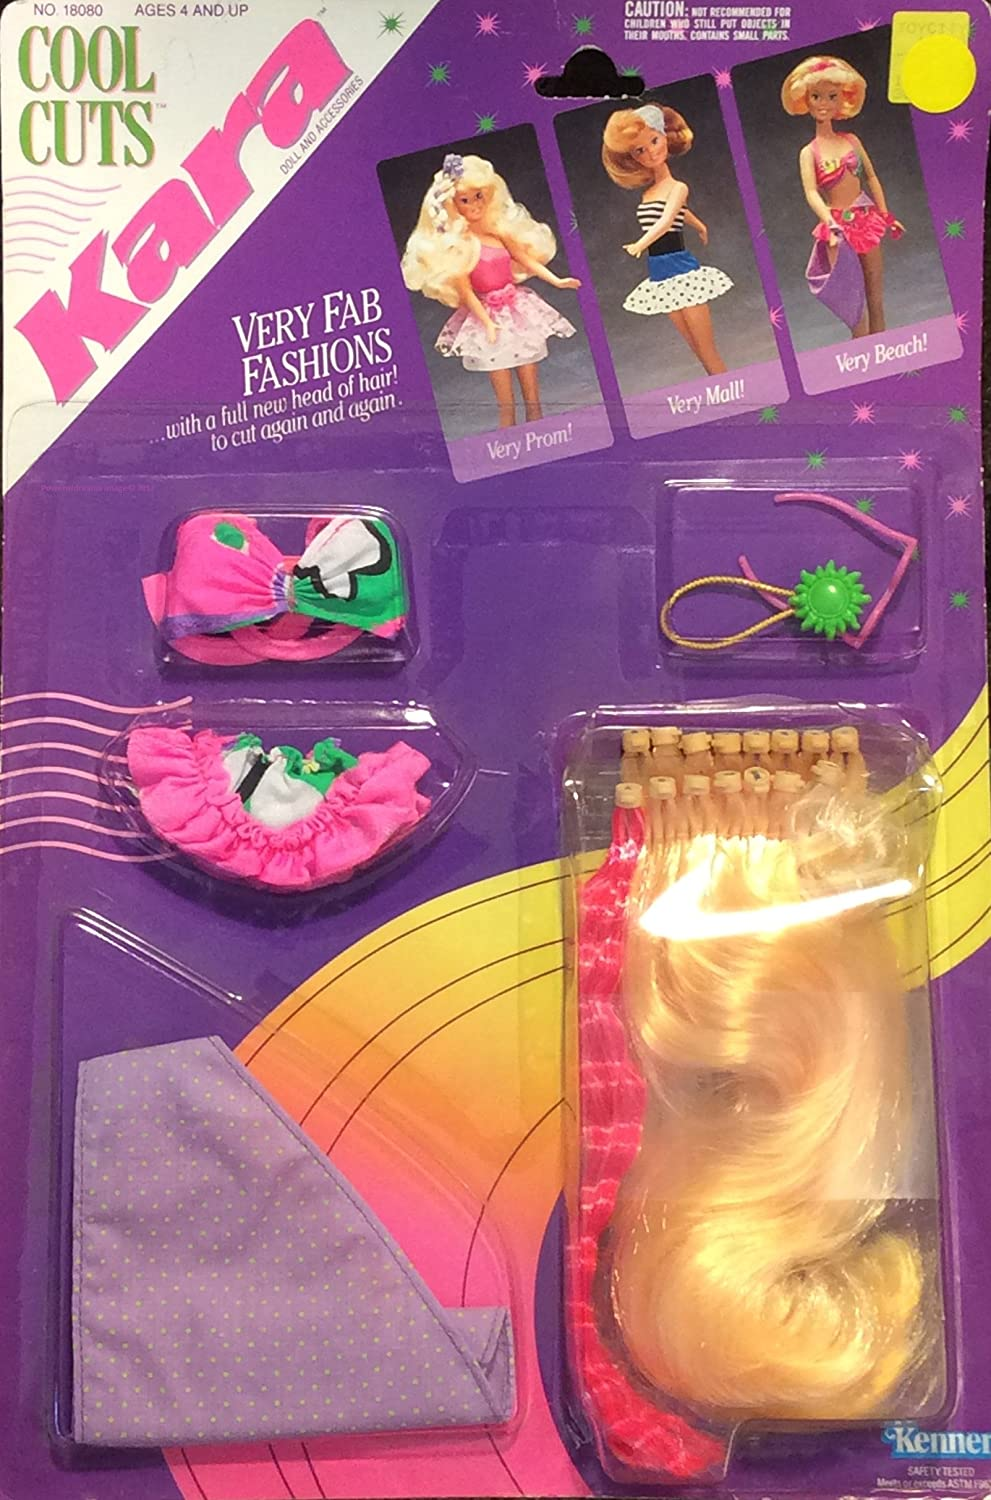 dff99c69d8 Amazon.com  COOL CUTS KARA ACCESSORIES NO. 18080 (1990) by Kenner  Toys    Games